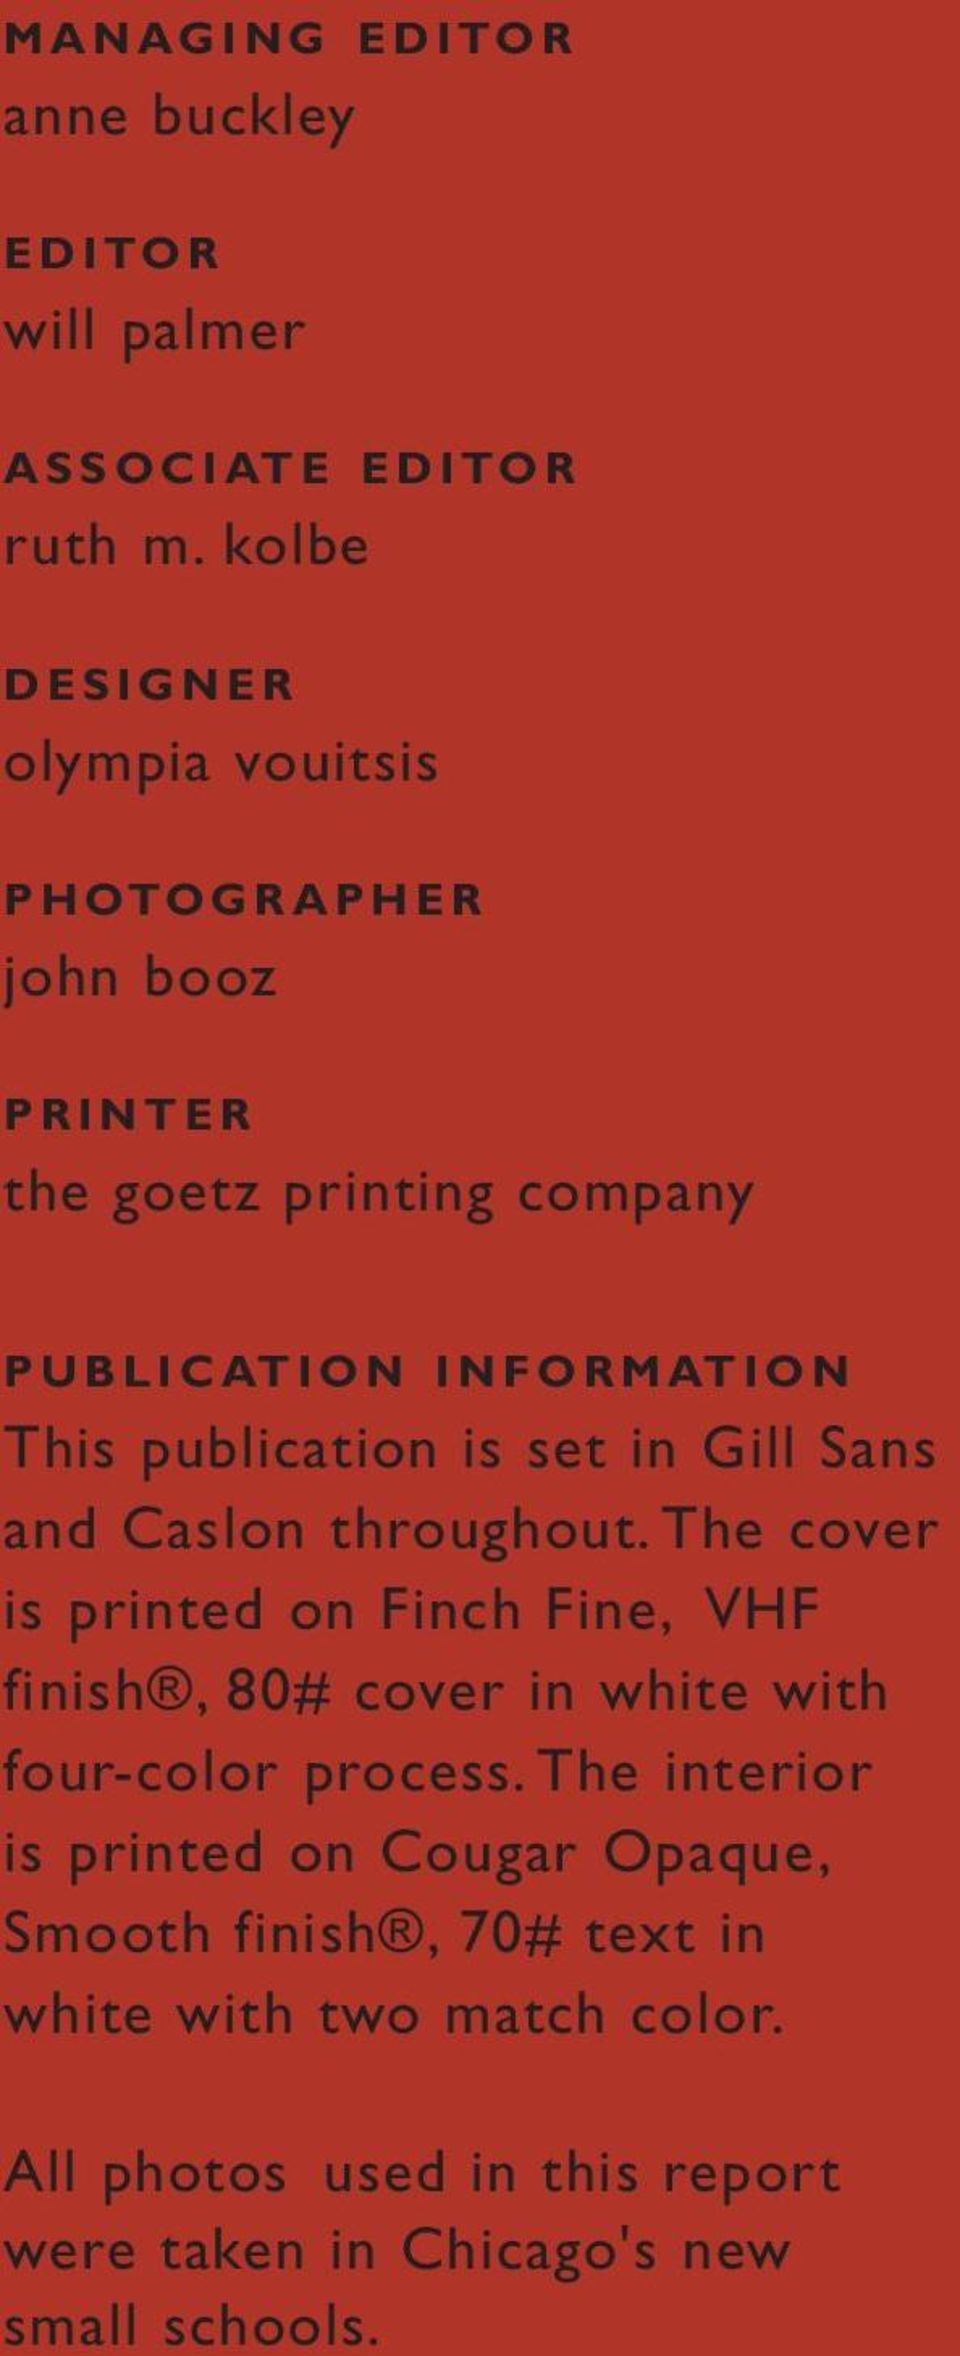 publication is set in Gill Sans and Caslon throughout.